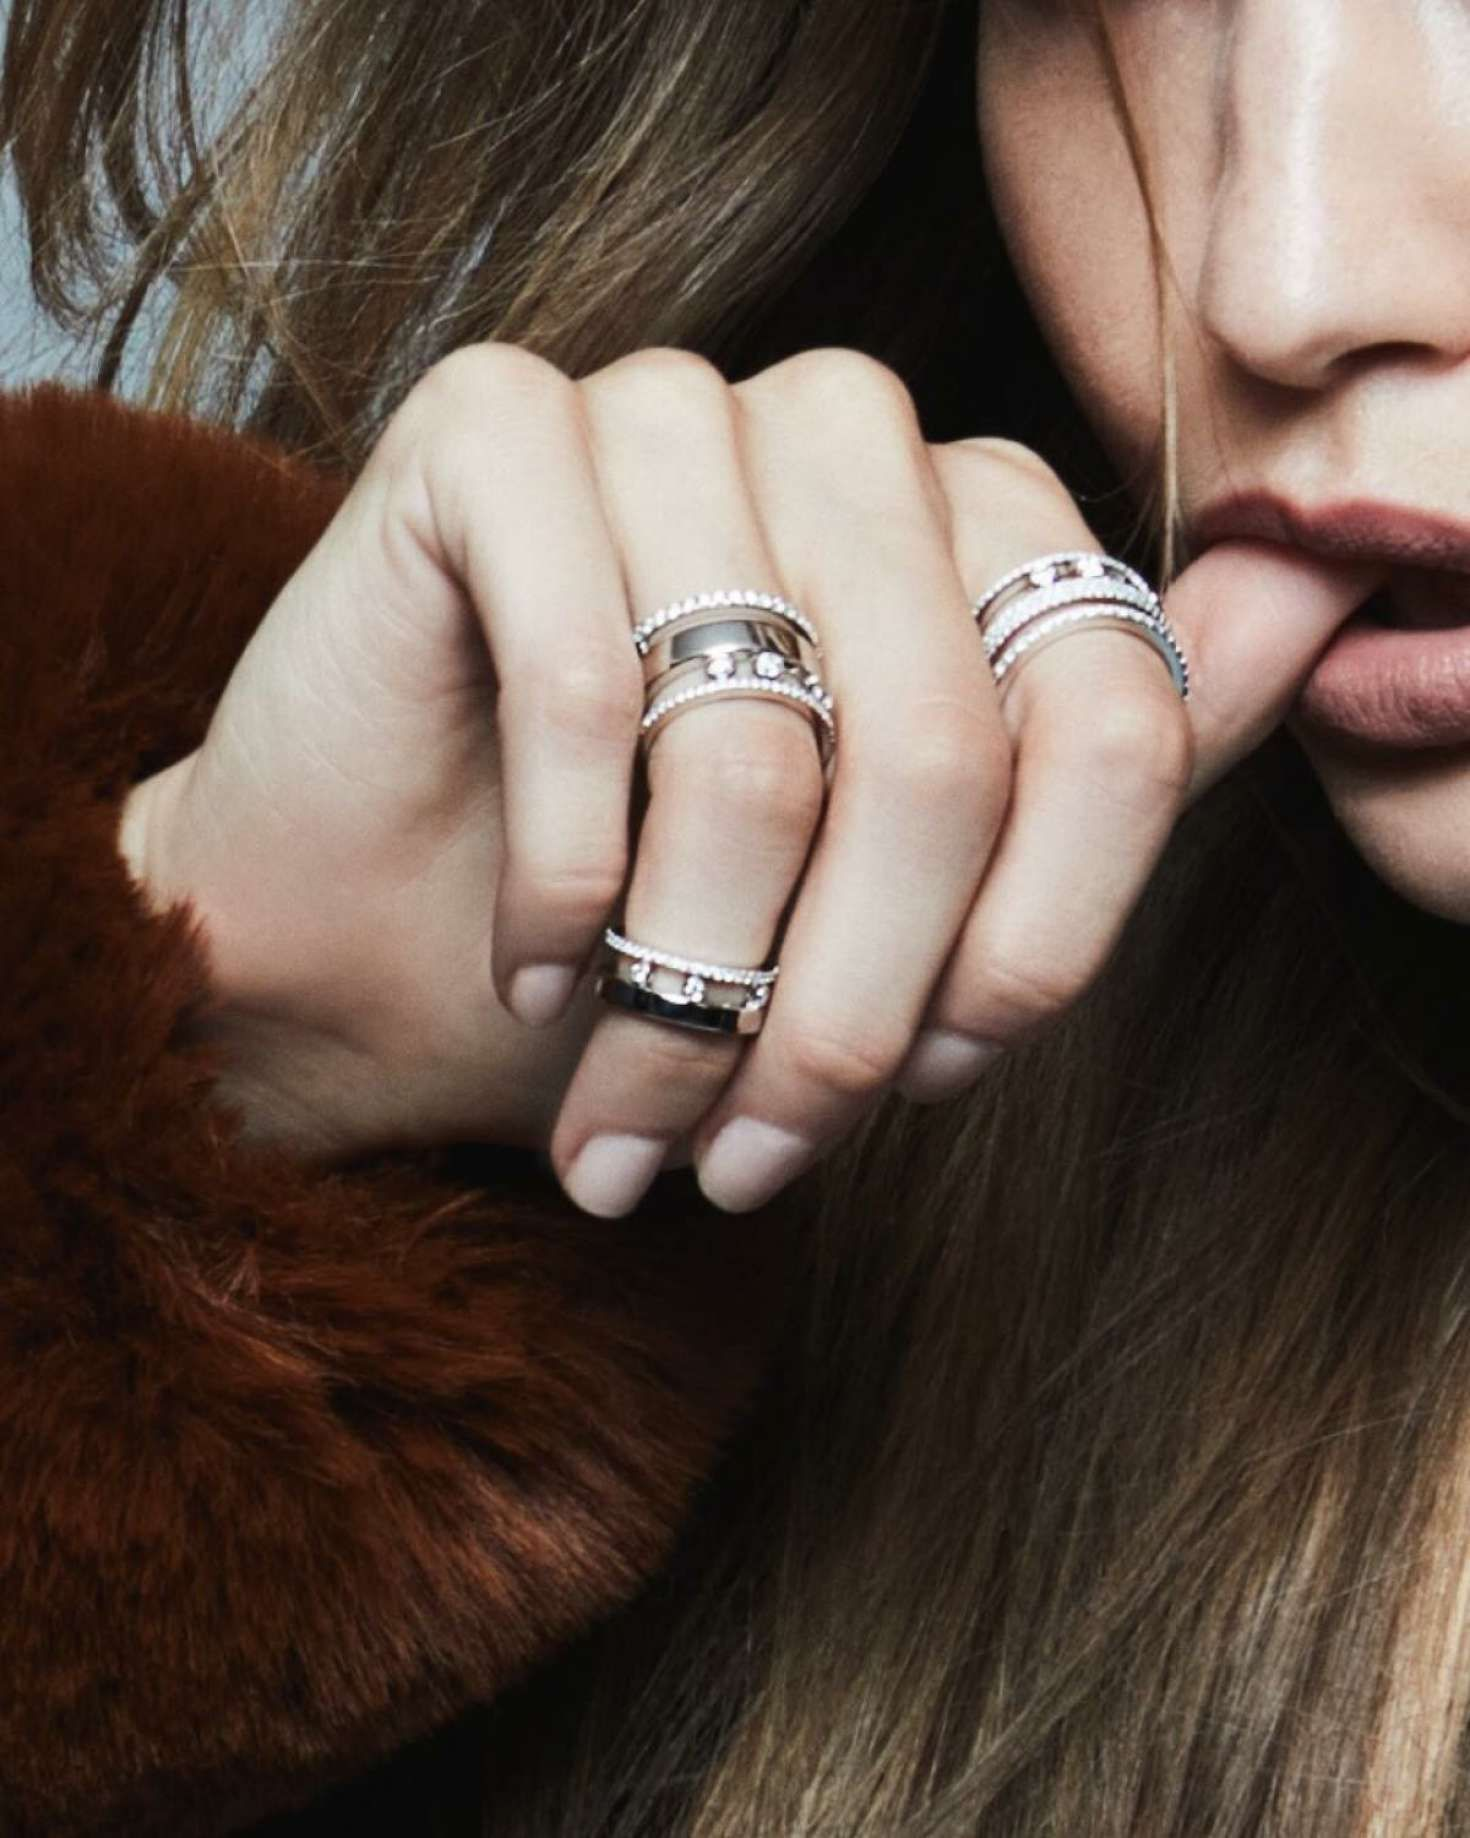 Gigi's rings, Messika, Twin Collection, 2019